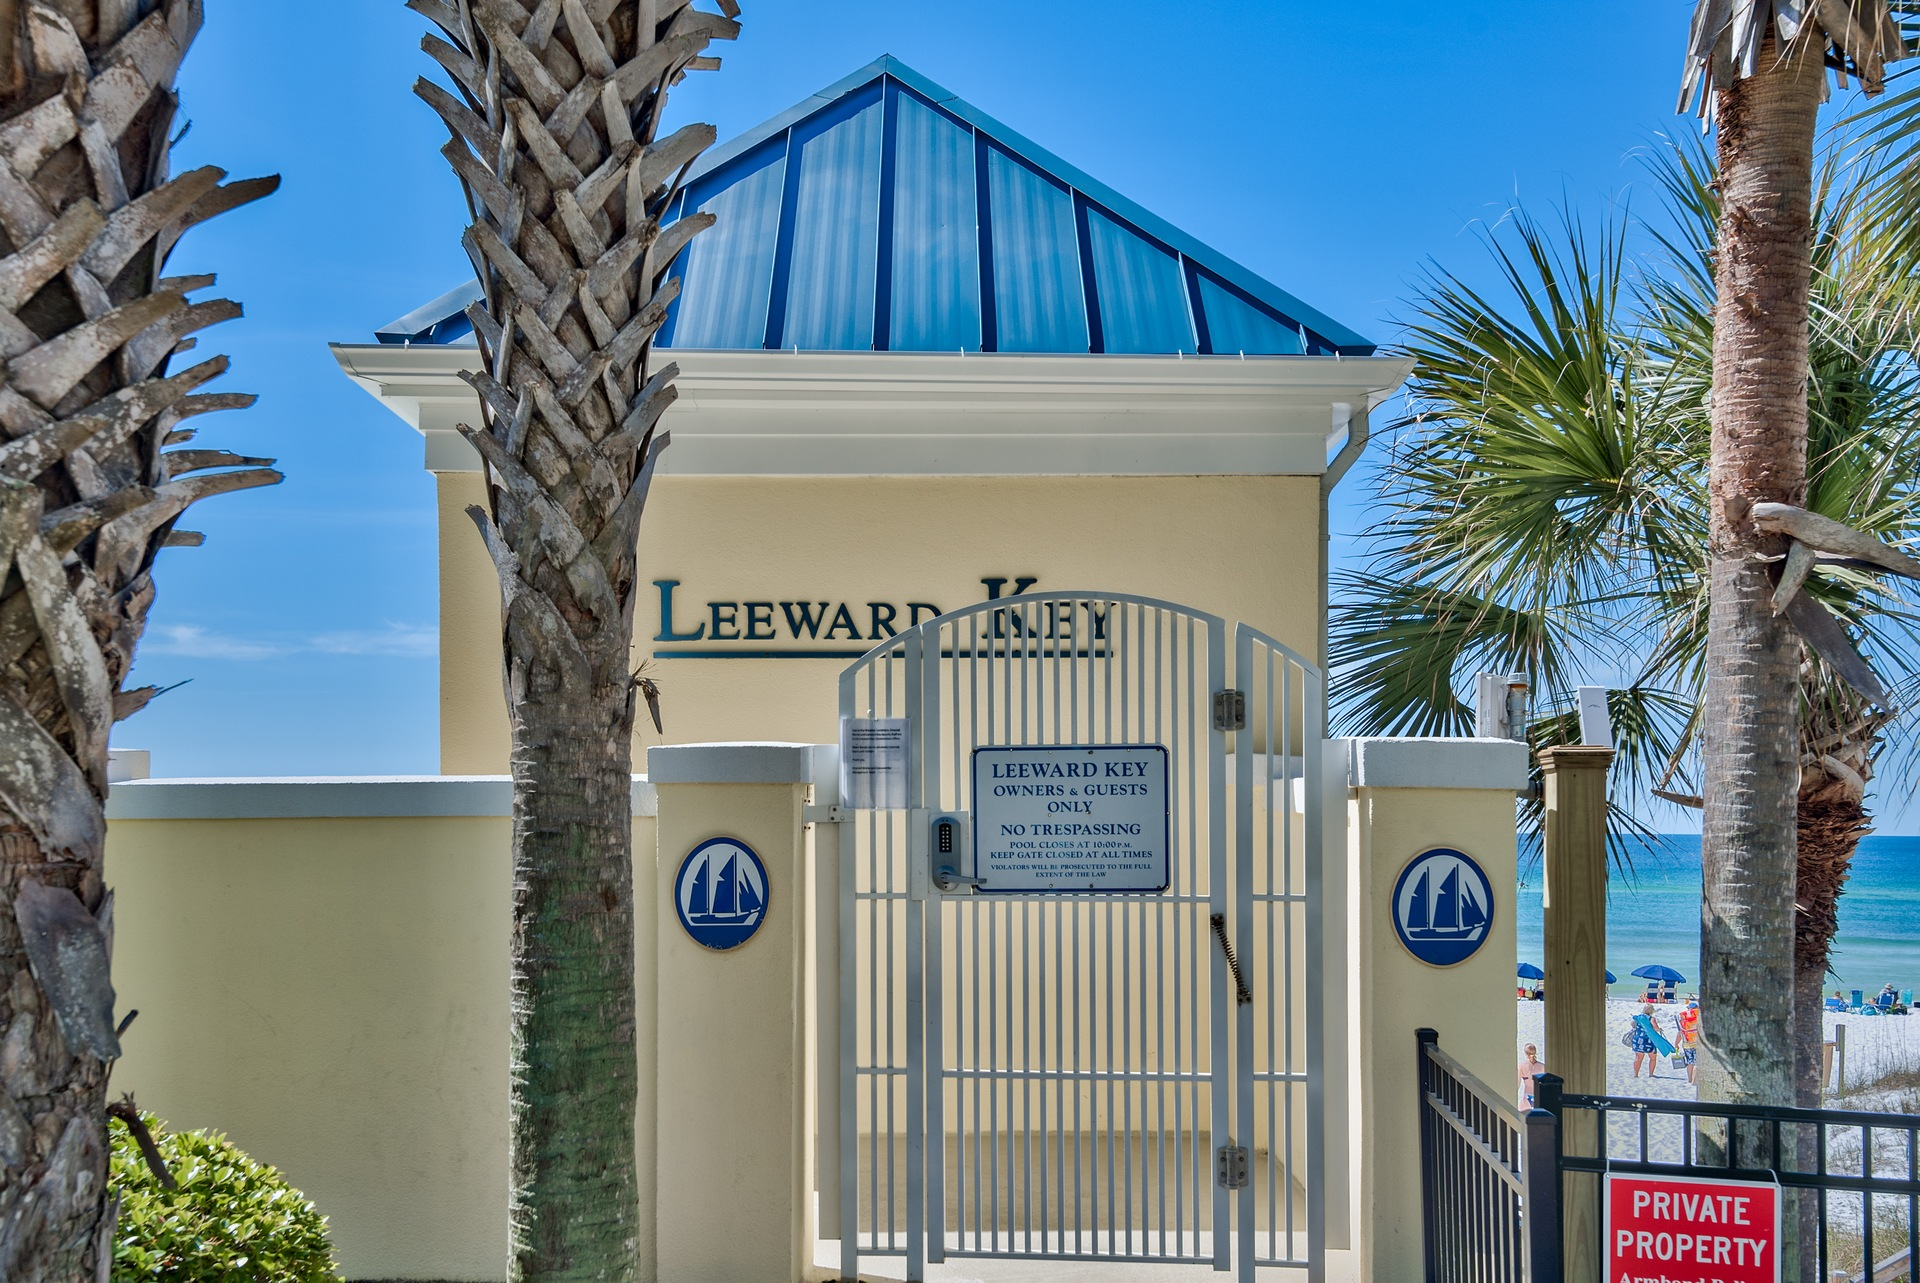 LeeWard Key Beach Access in Destin Florida